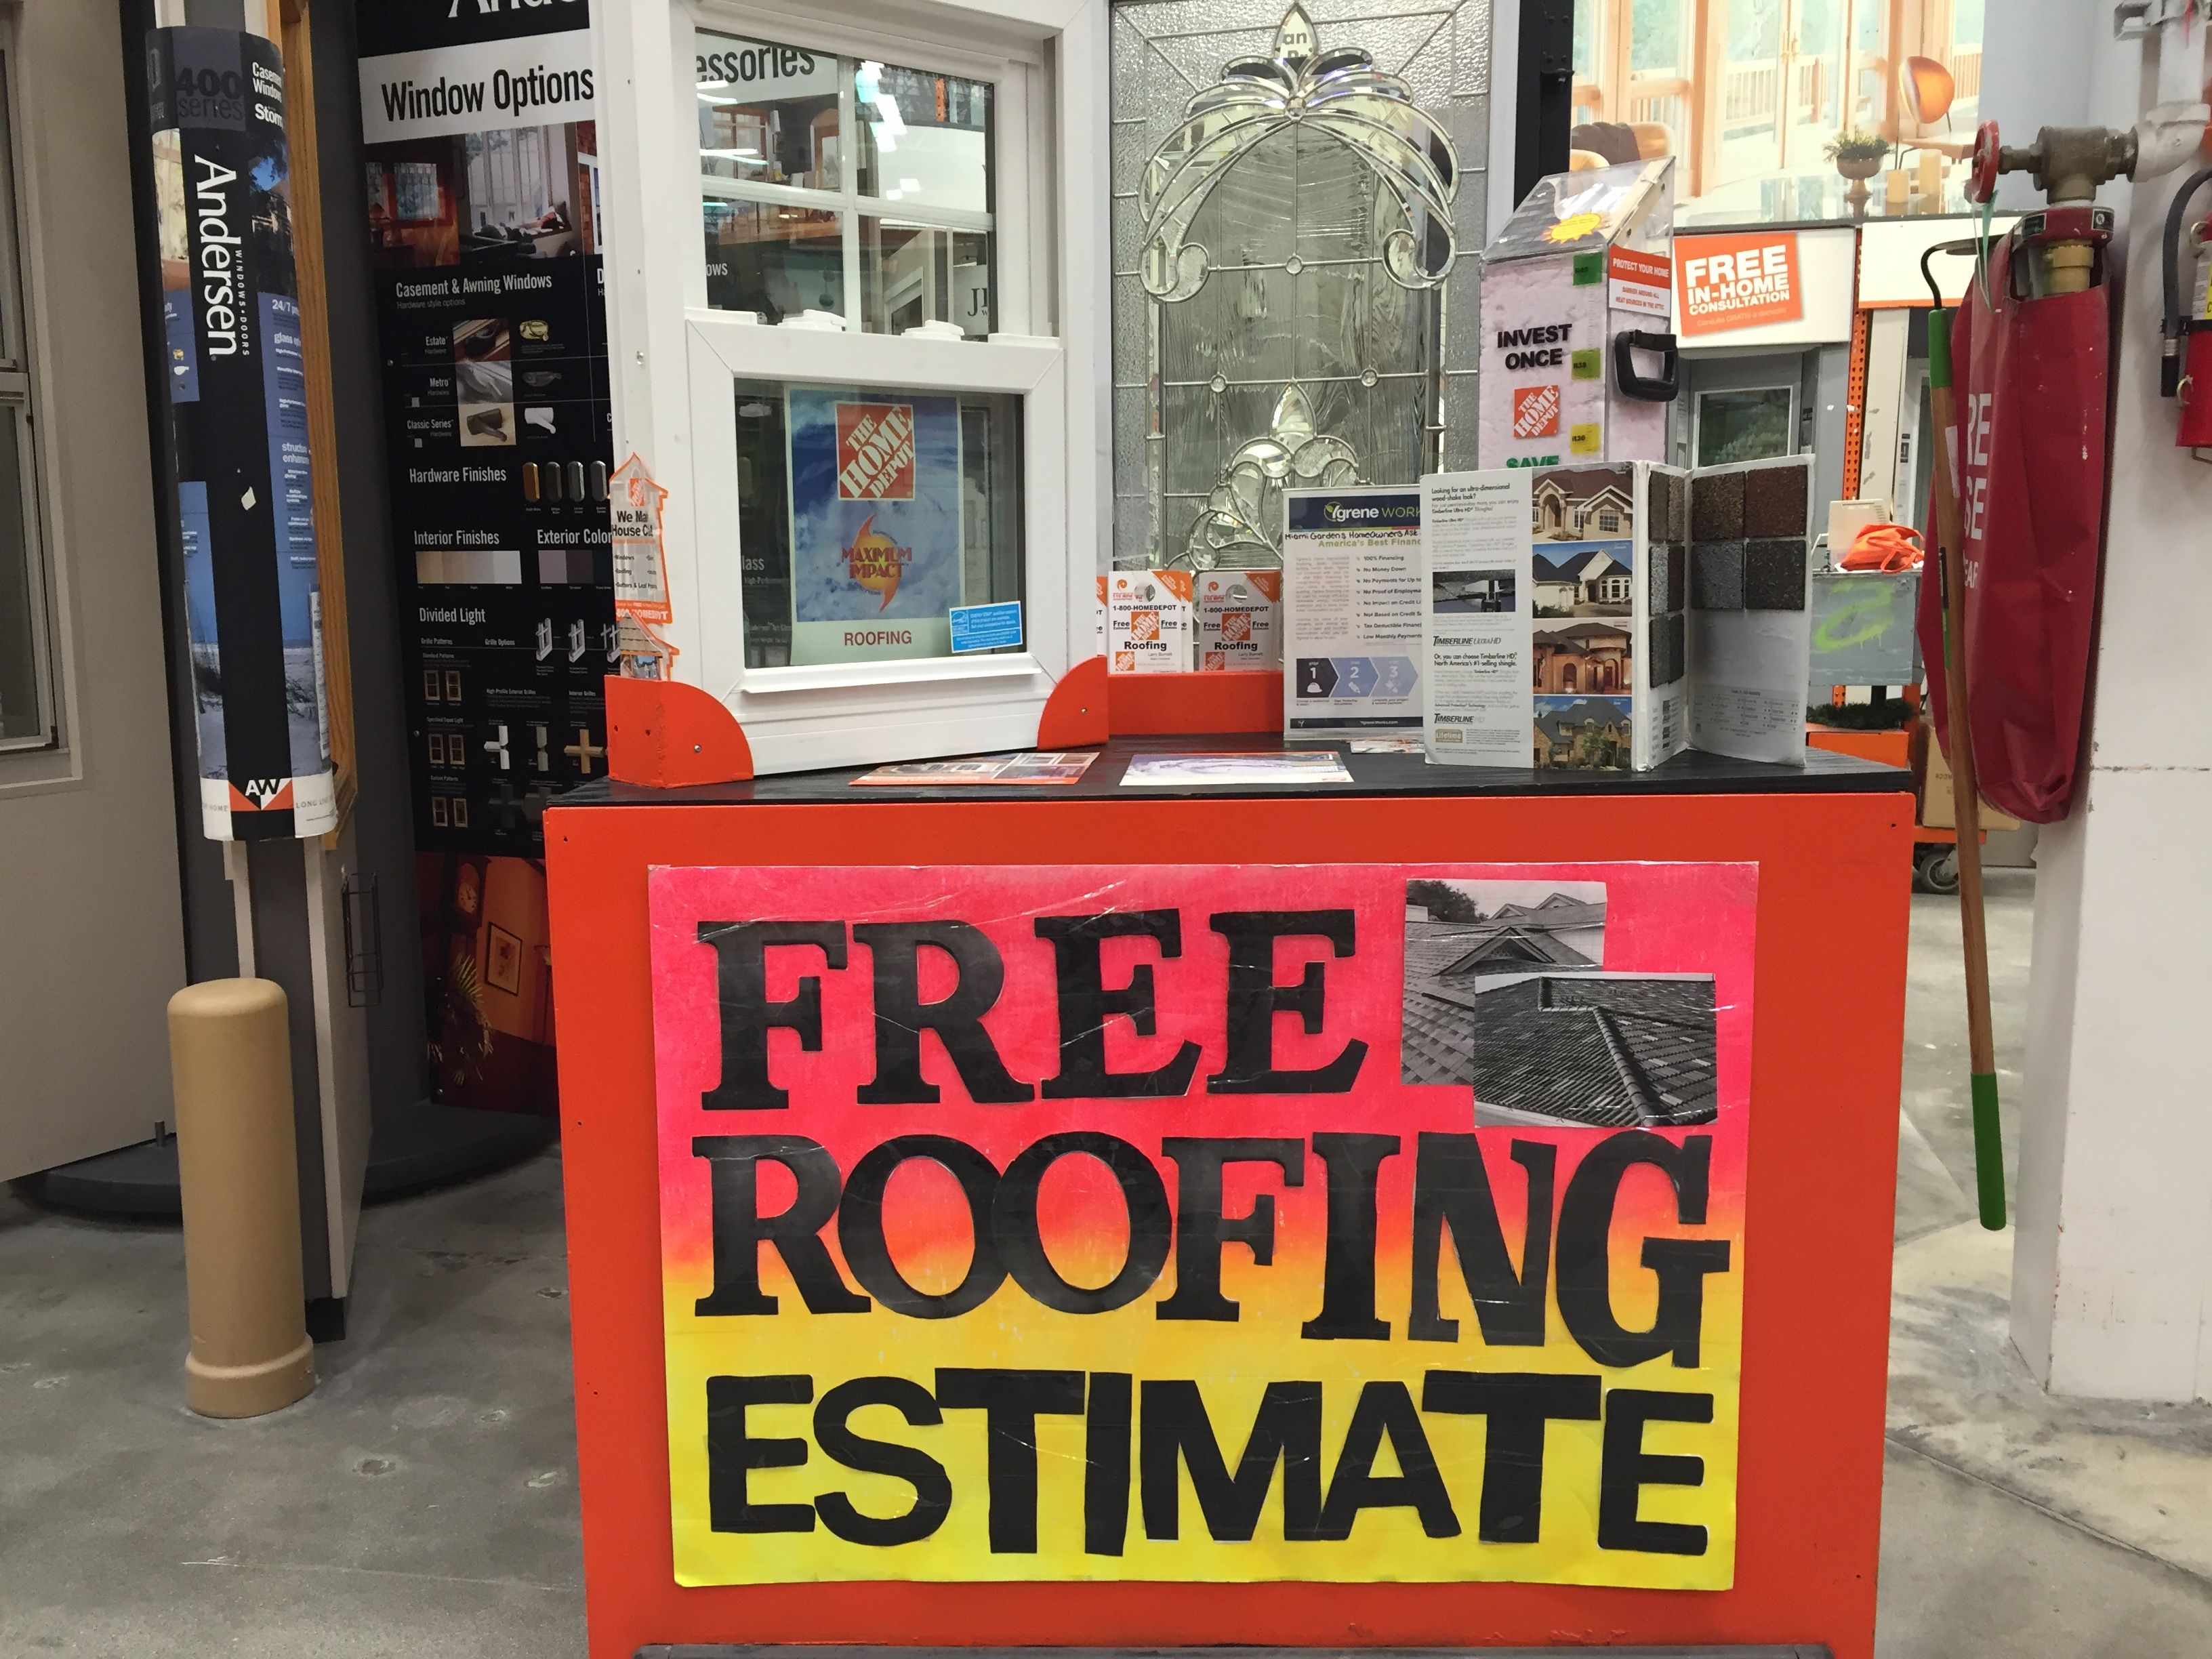 Diyhomedepot Signs Home Depot Store0209 District265 By Mary Home Depot Projects Home Depot Roofing Estimate